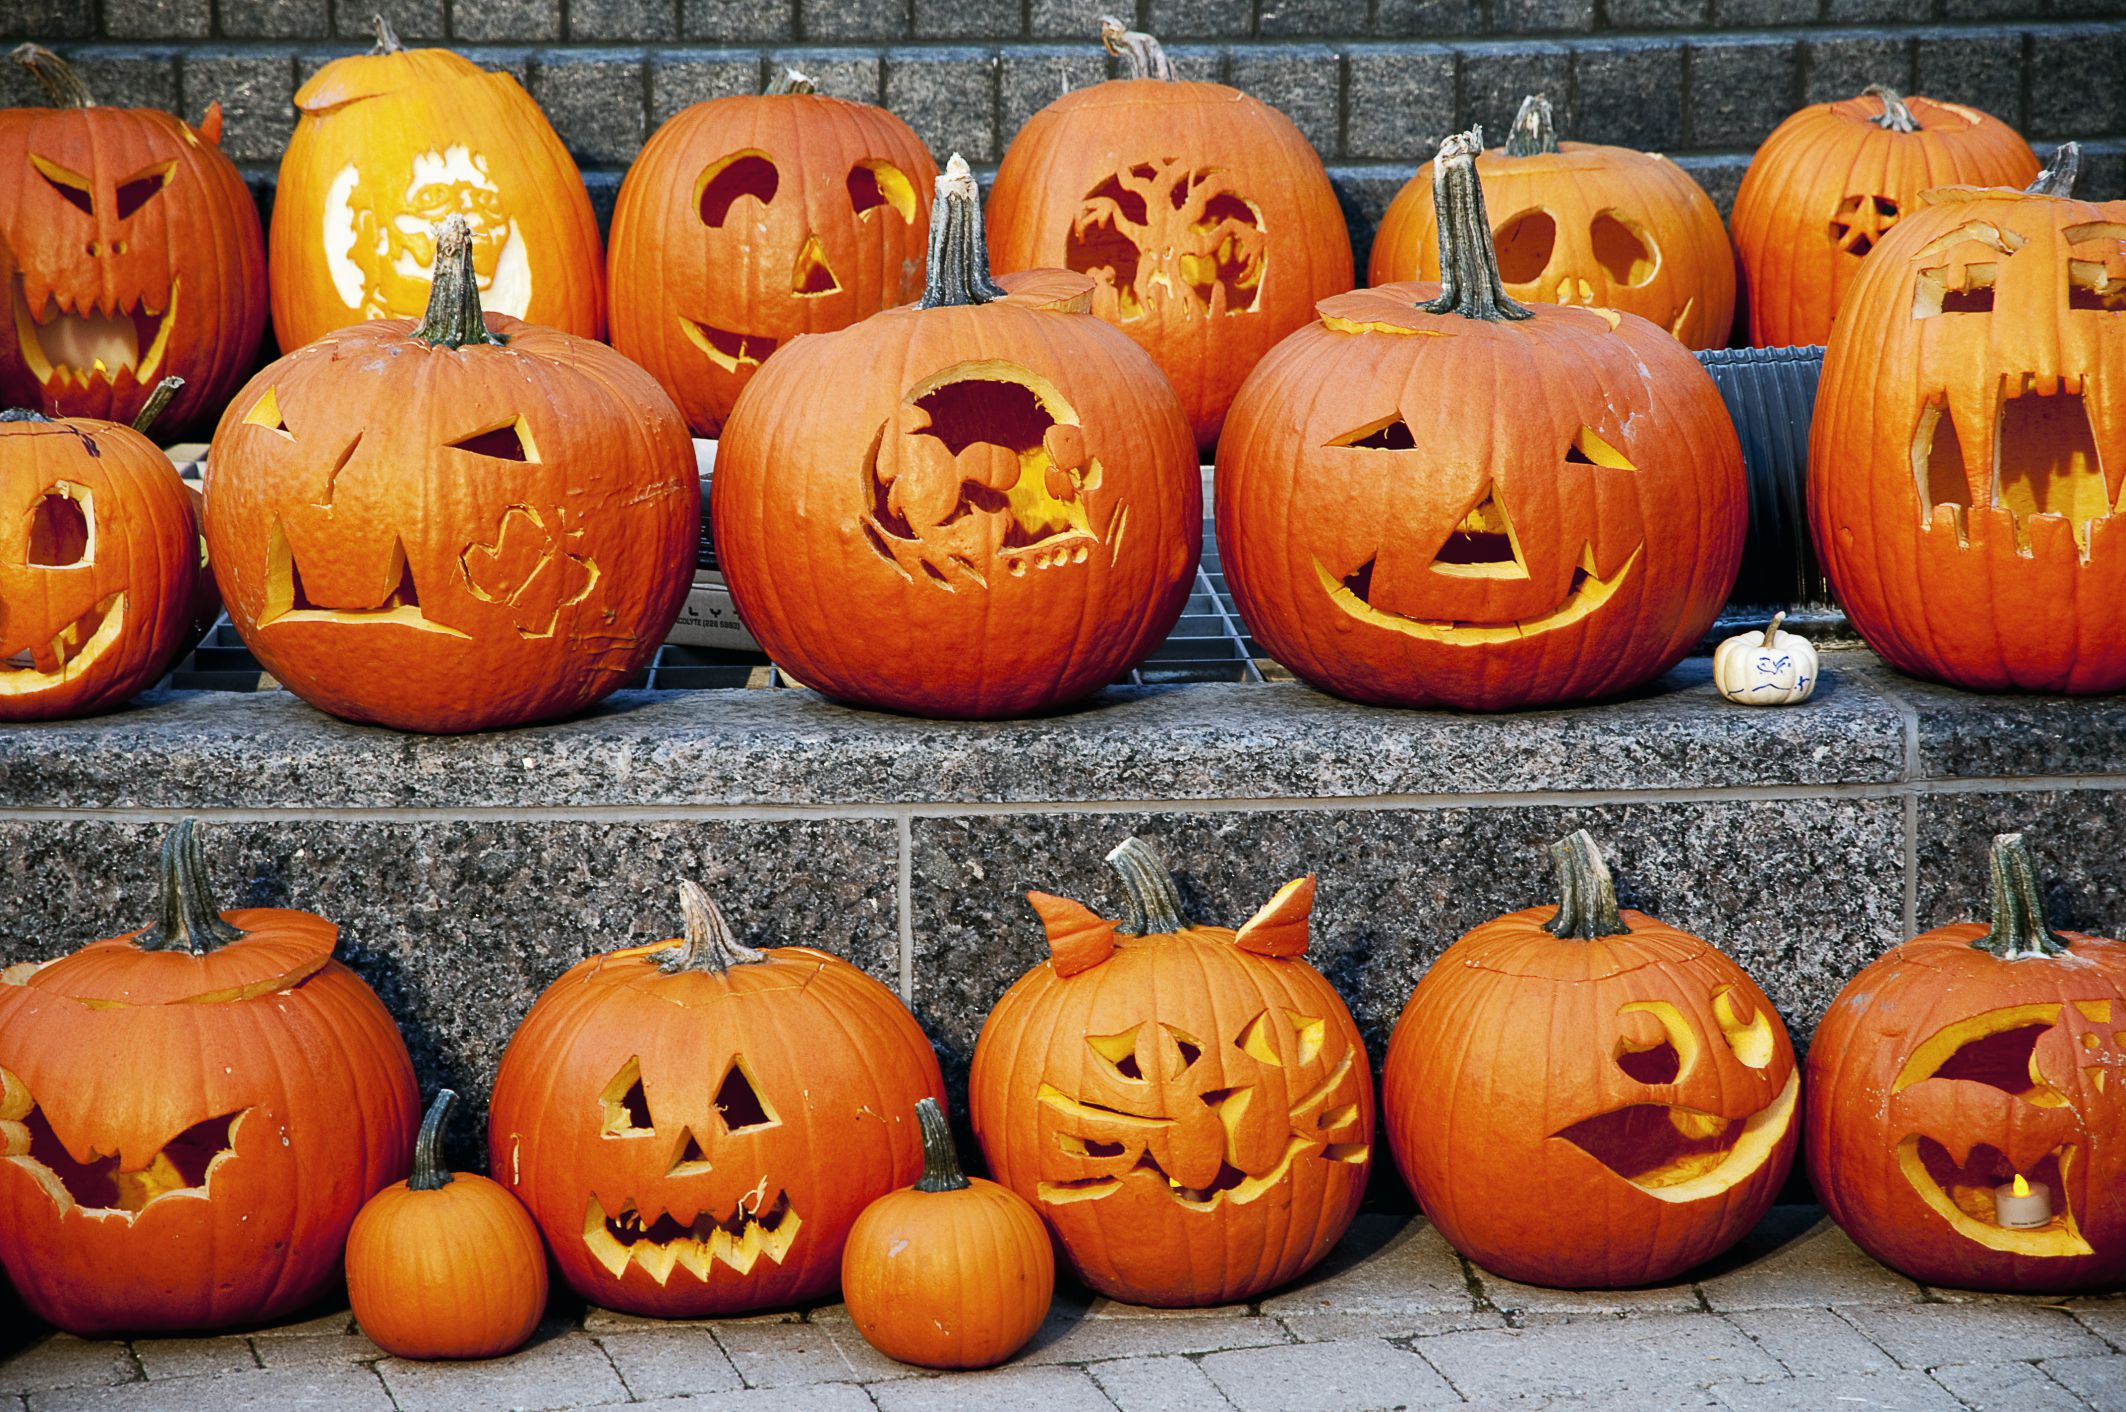 How to Preserve a Carved Halloween Jack-o'-Lantern